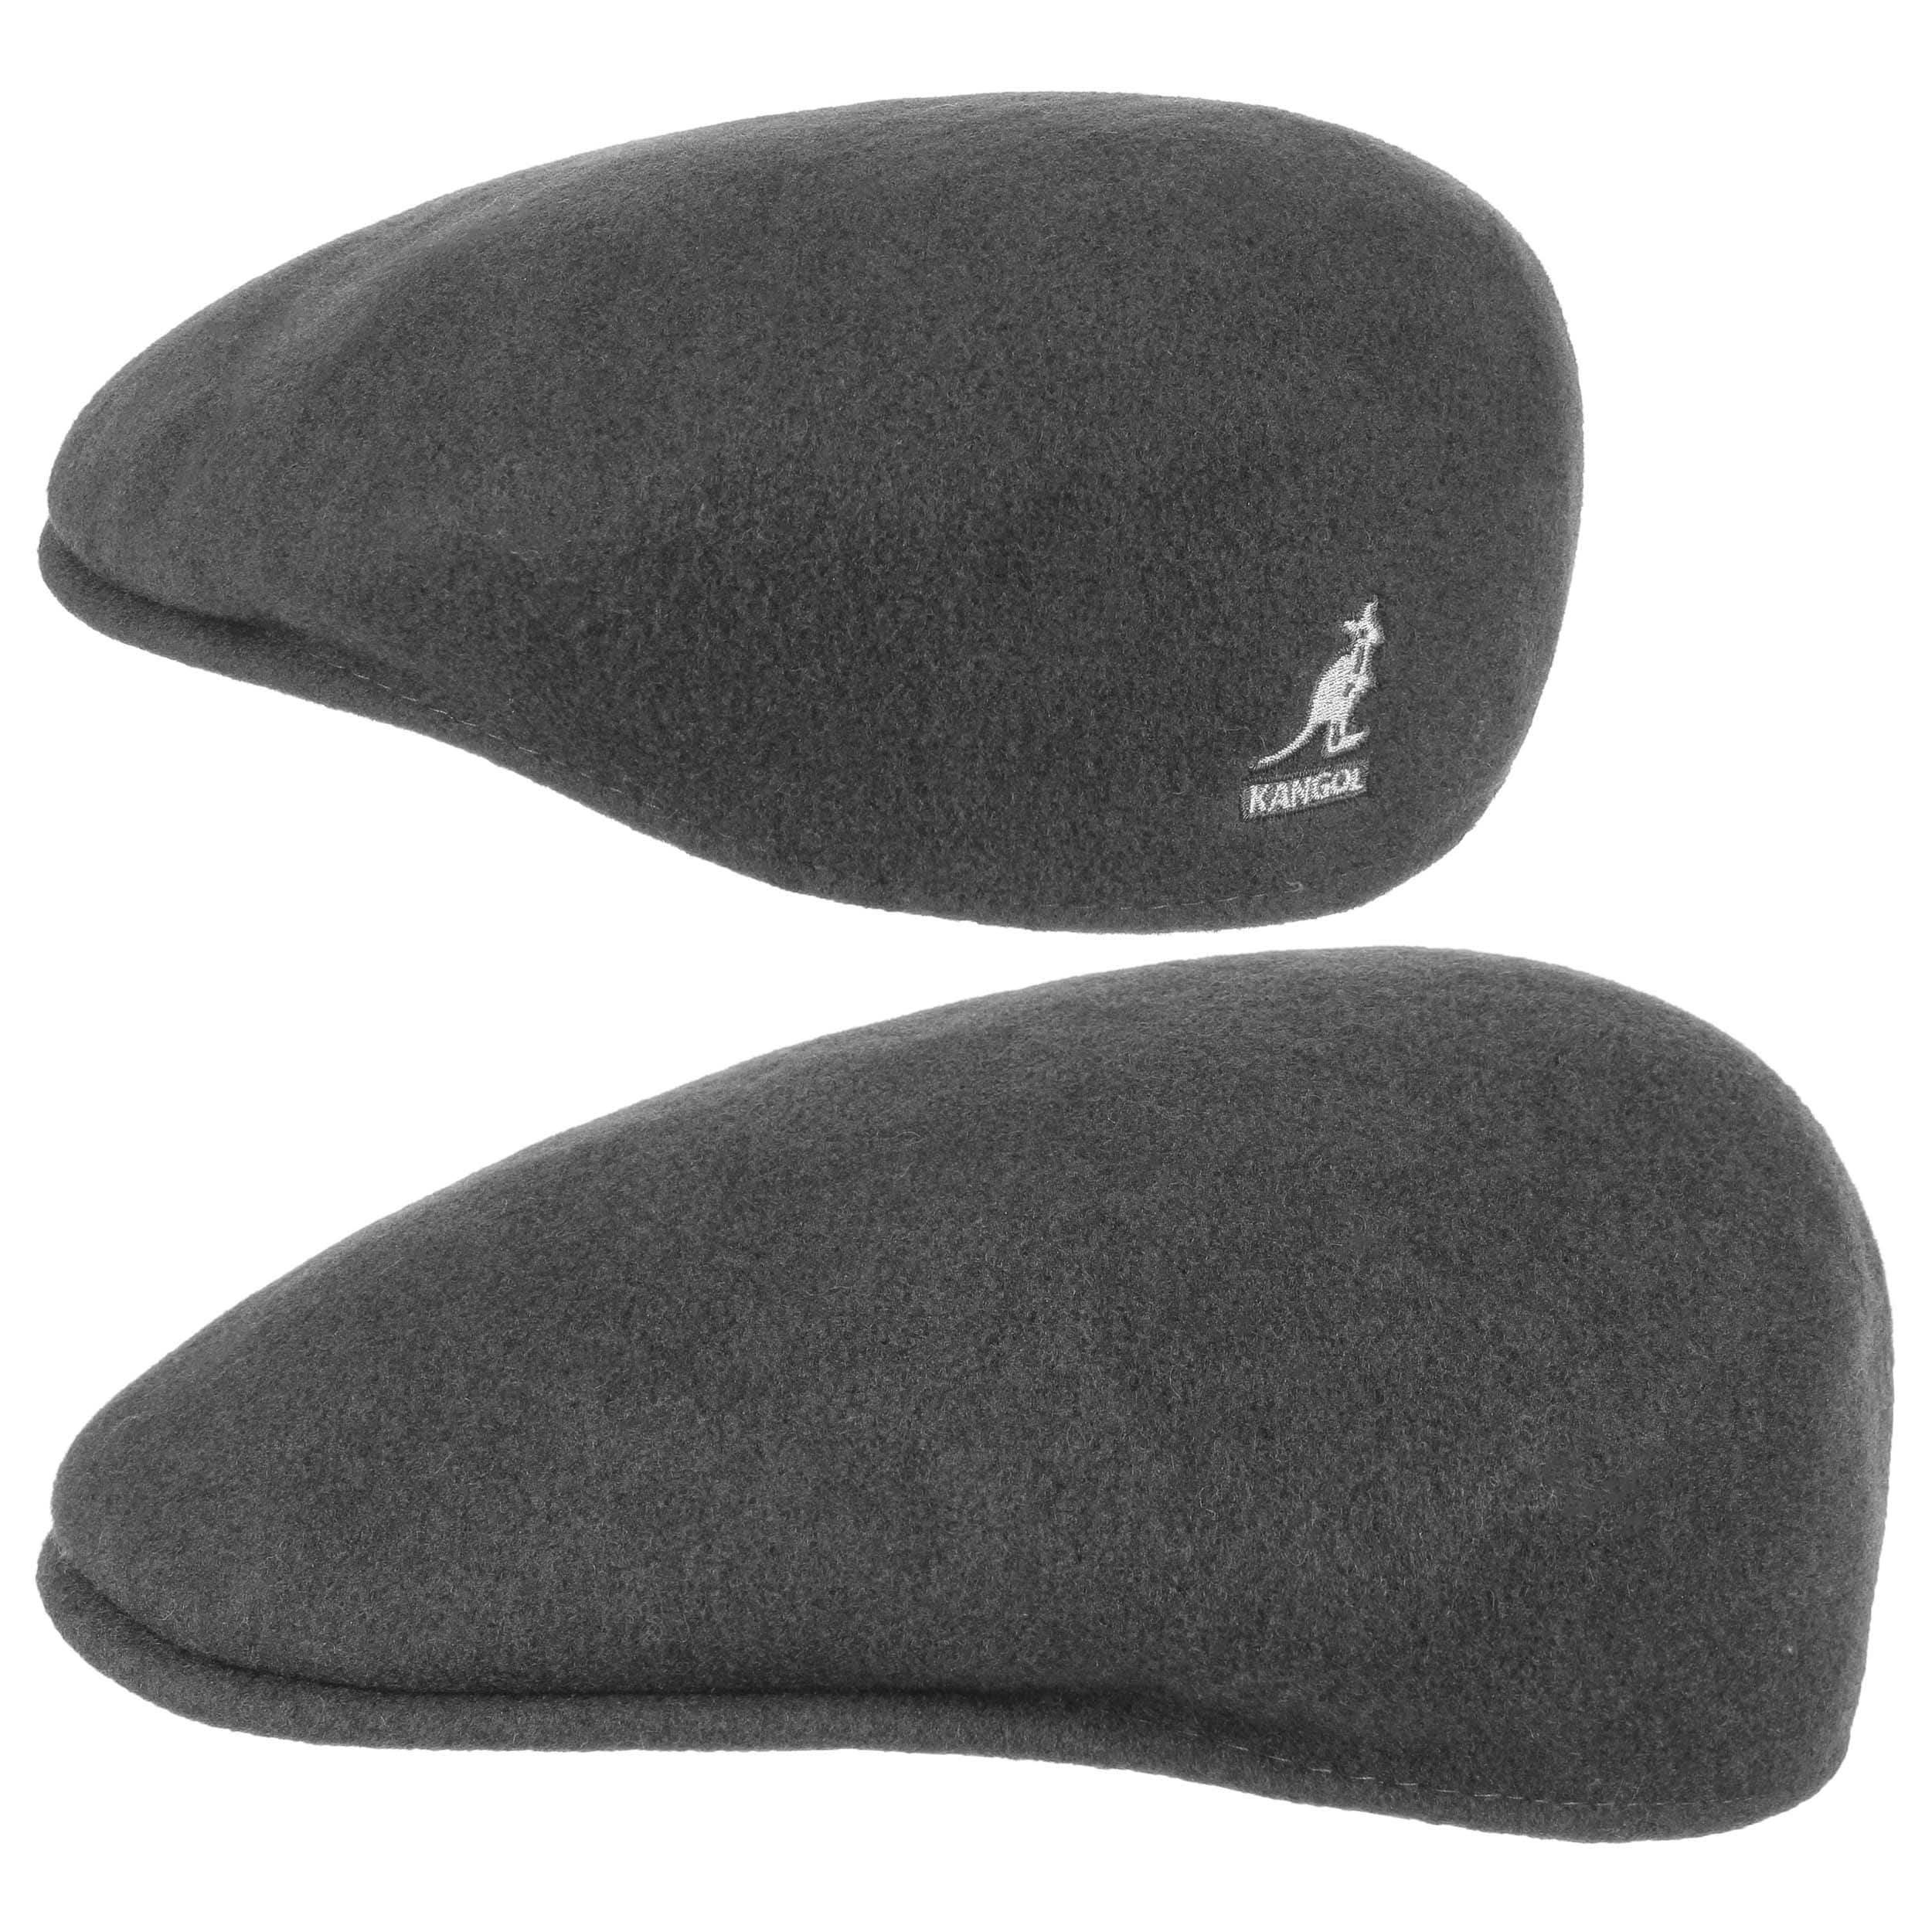 ... 504 Flat Cap by Kangol - anthracite 6 ... 8bae543ce73